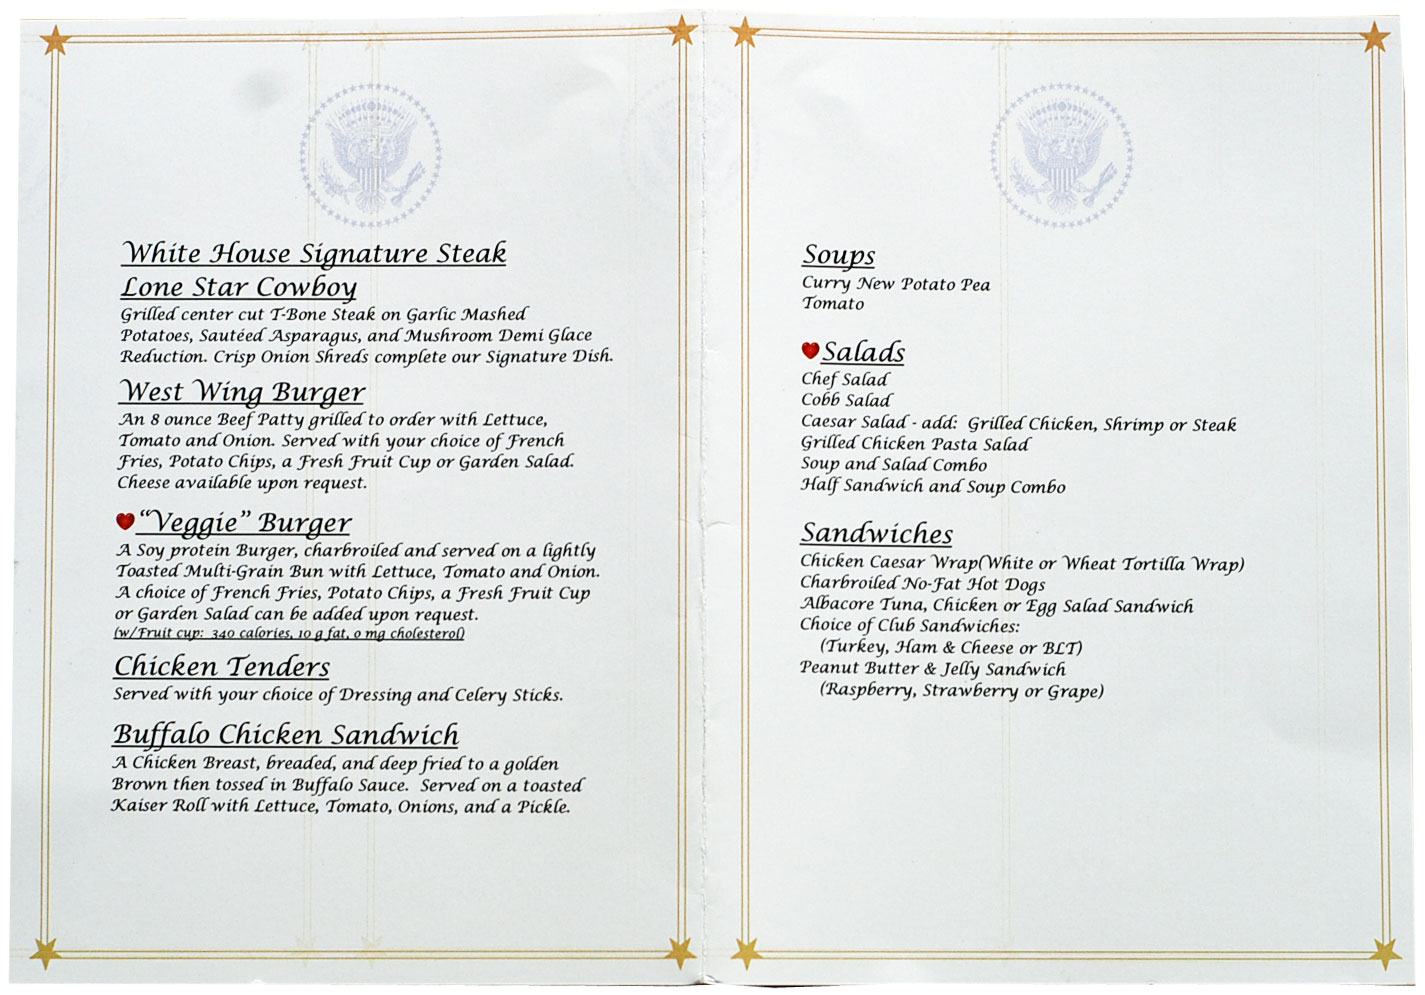 White House Mess menu